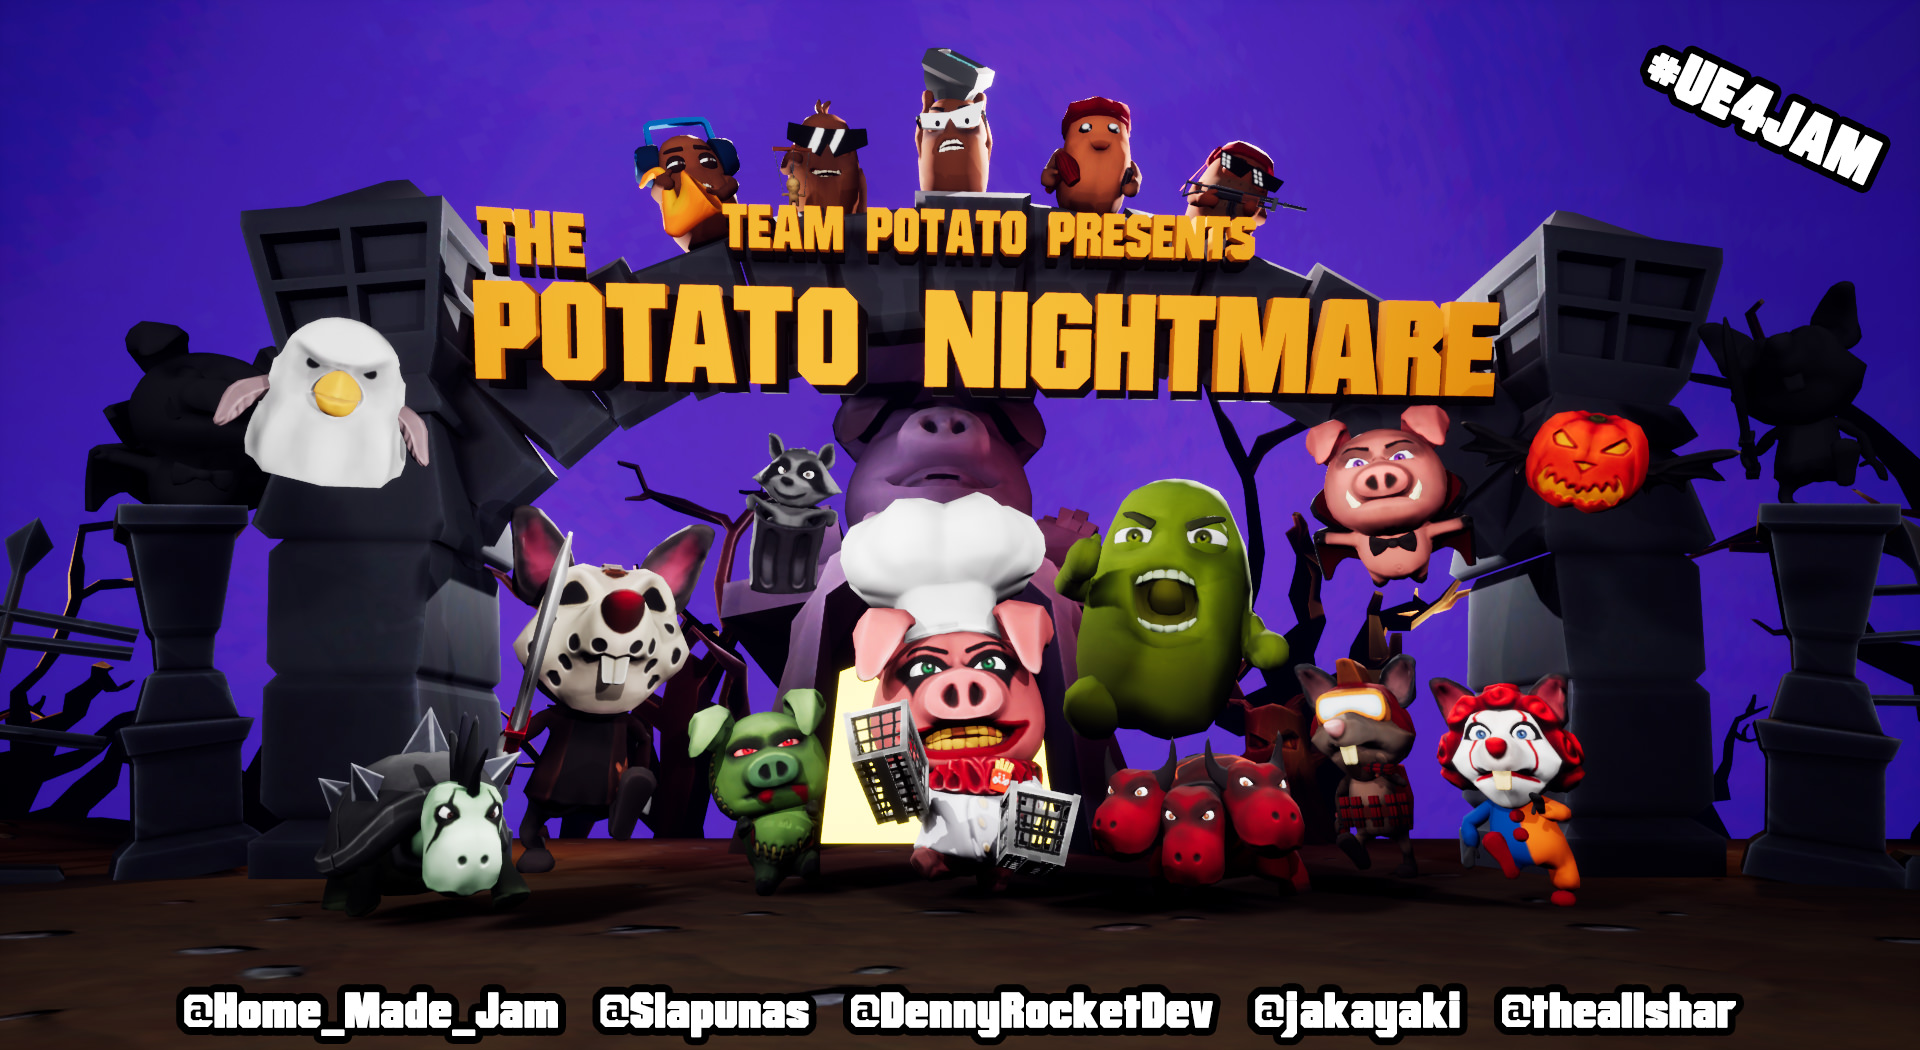 The Potato Nightmare TD